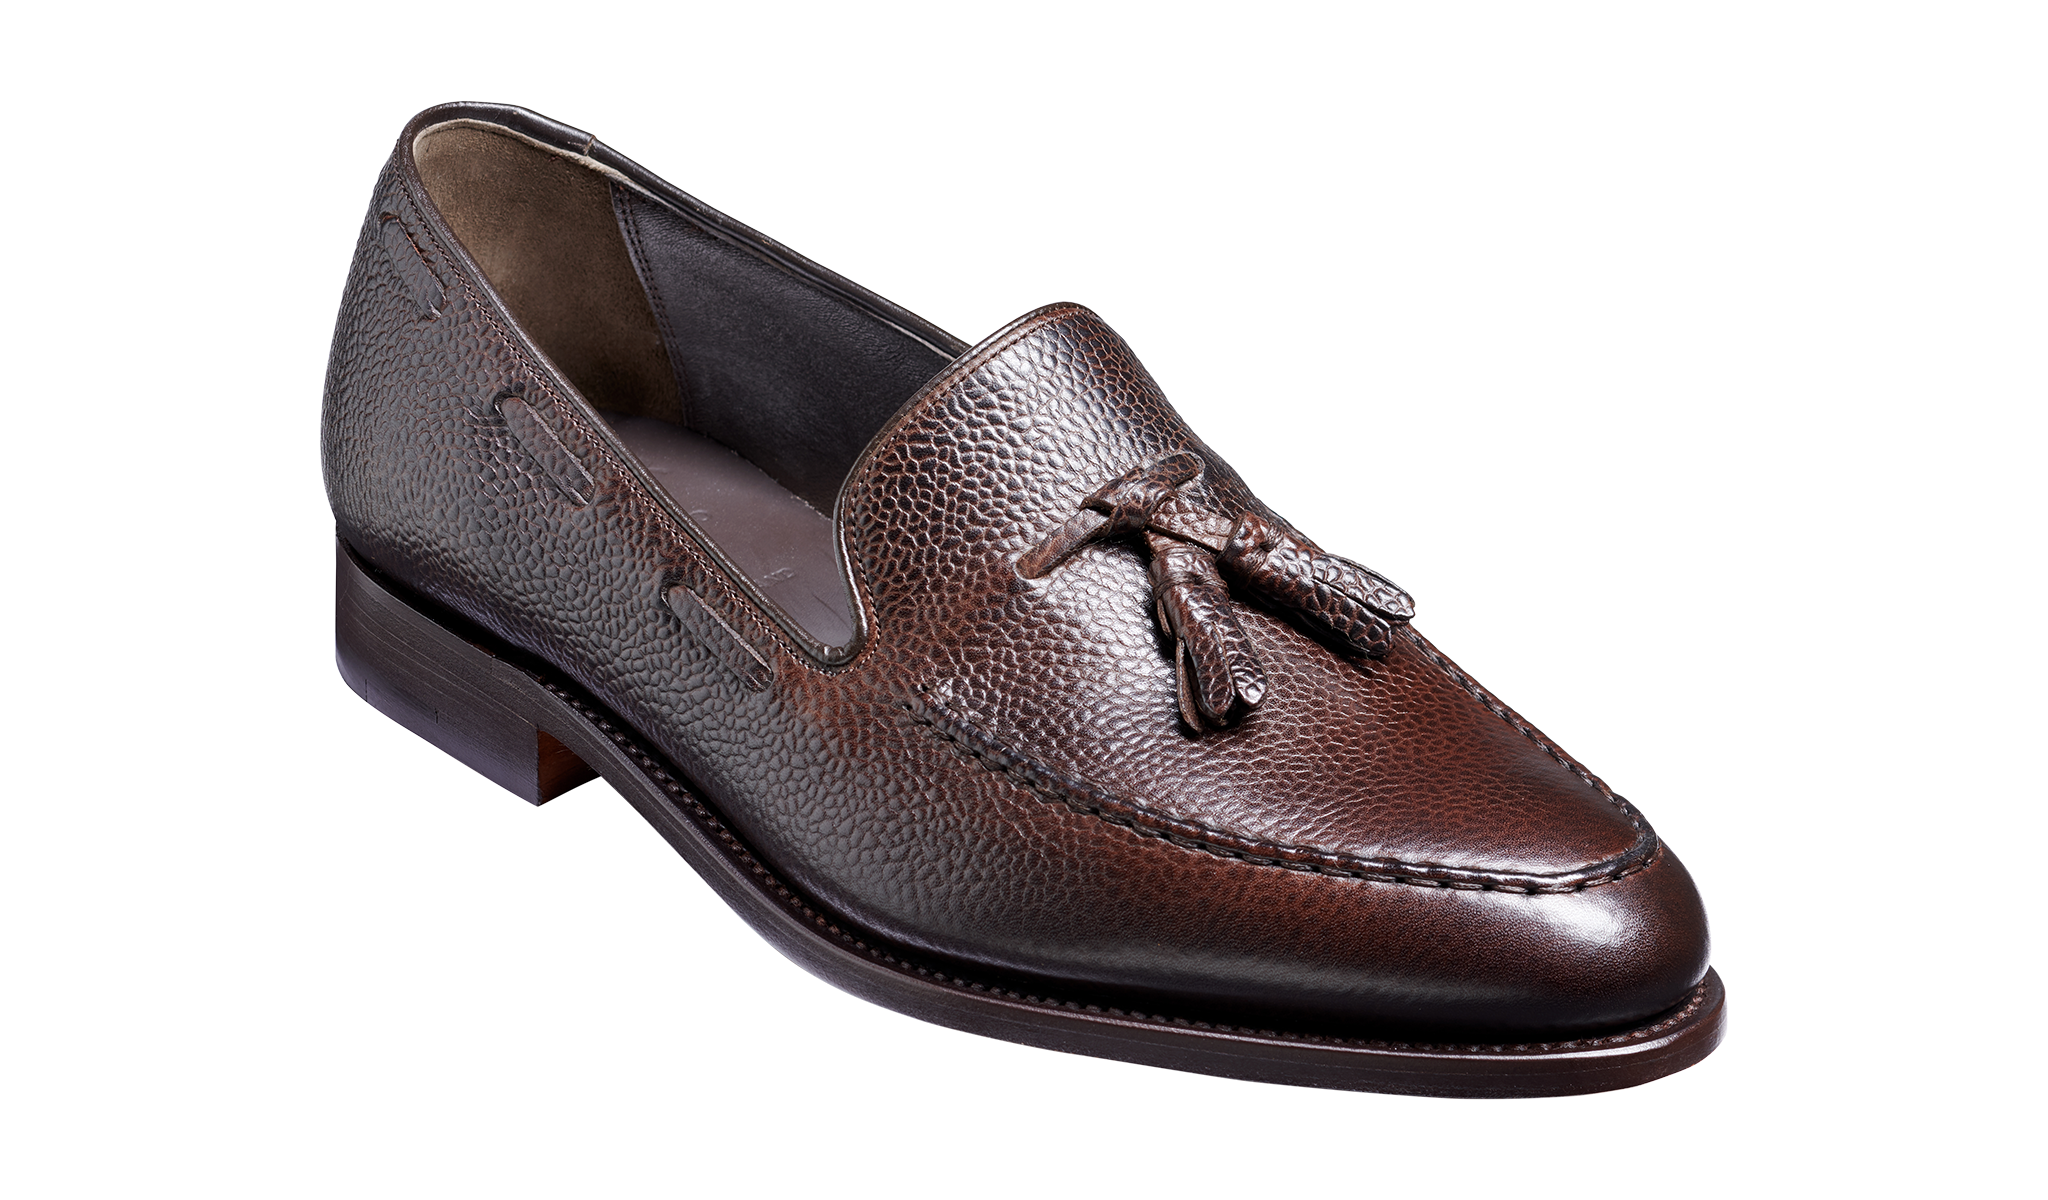 Newborough - A dark brown loafer for men.